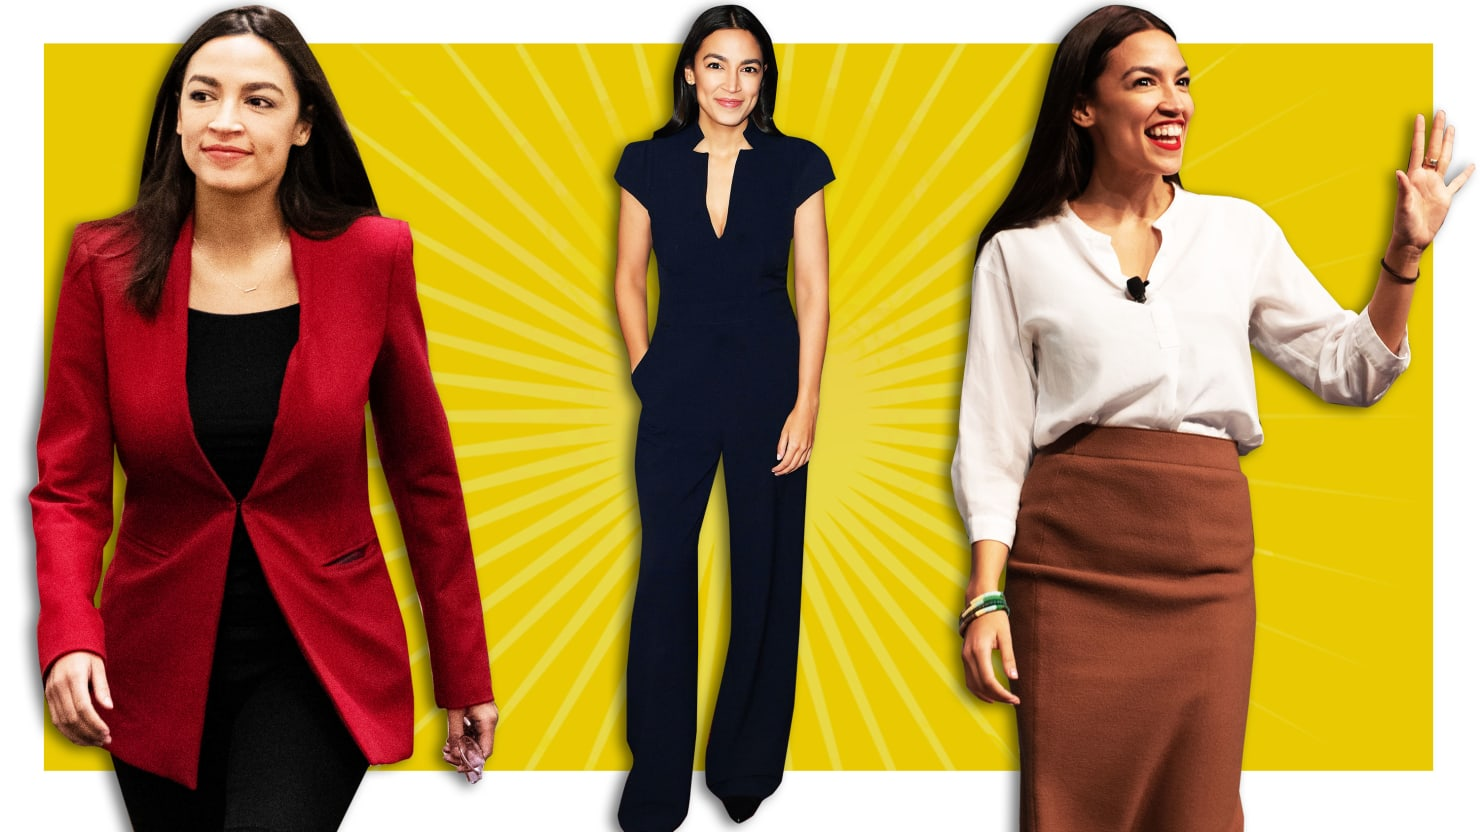 Can AOC Inspire Female 2020 Candidates to Dress How They Damn Well Want?